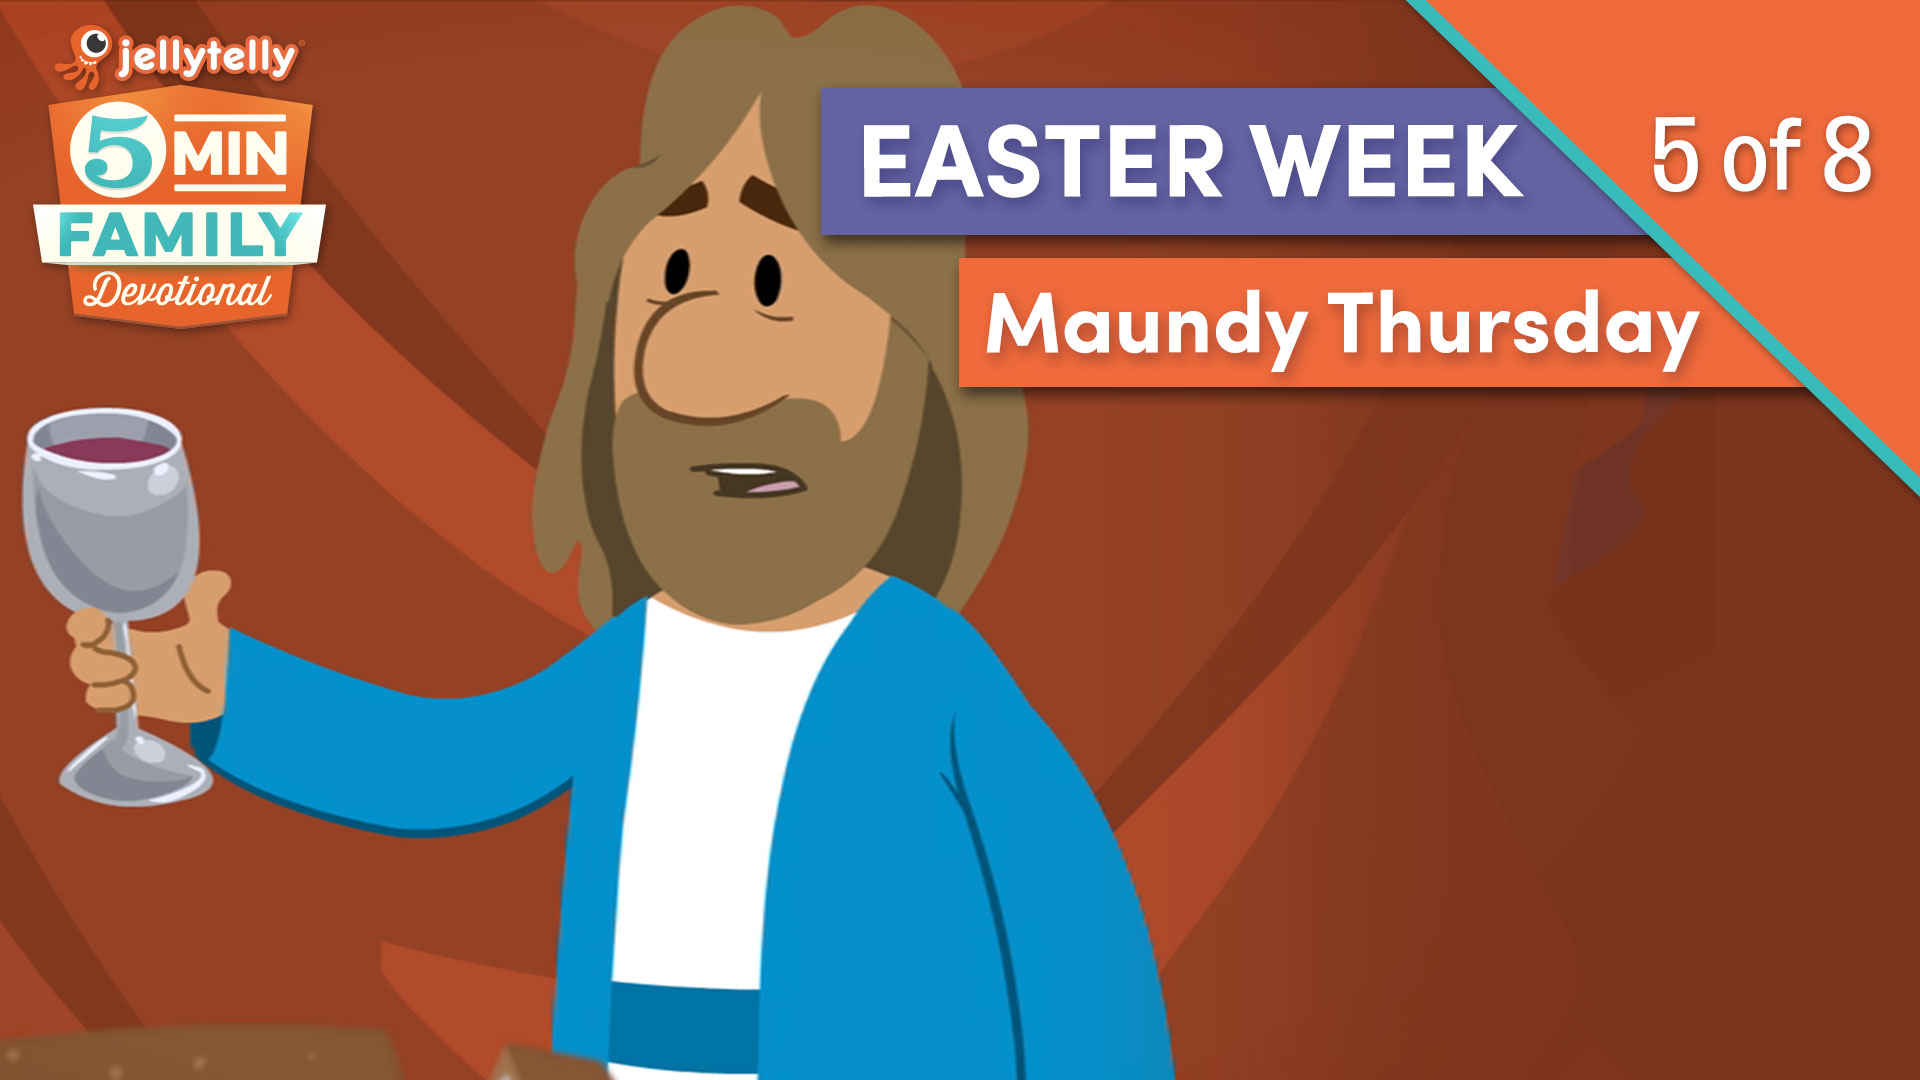 5mfd easter 05 maundy thursday preview image